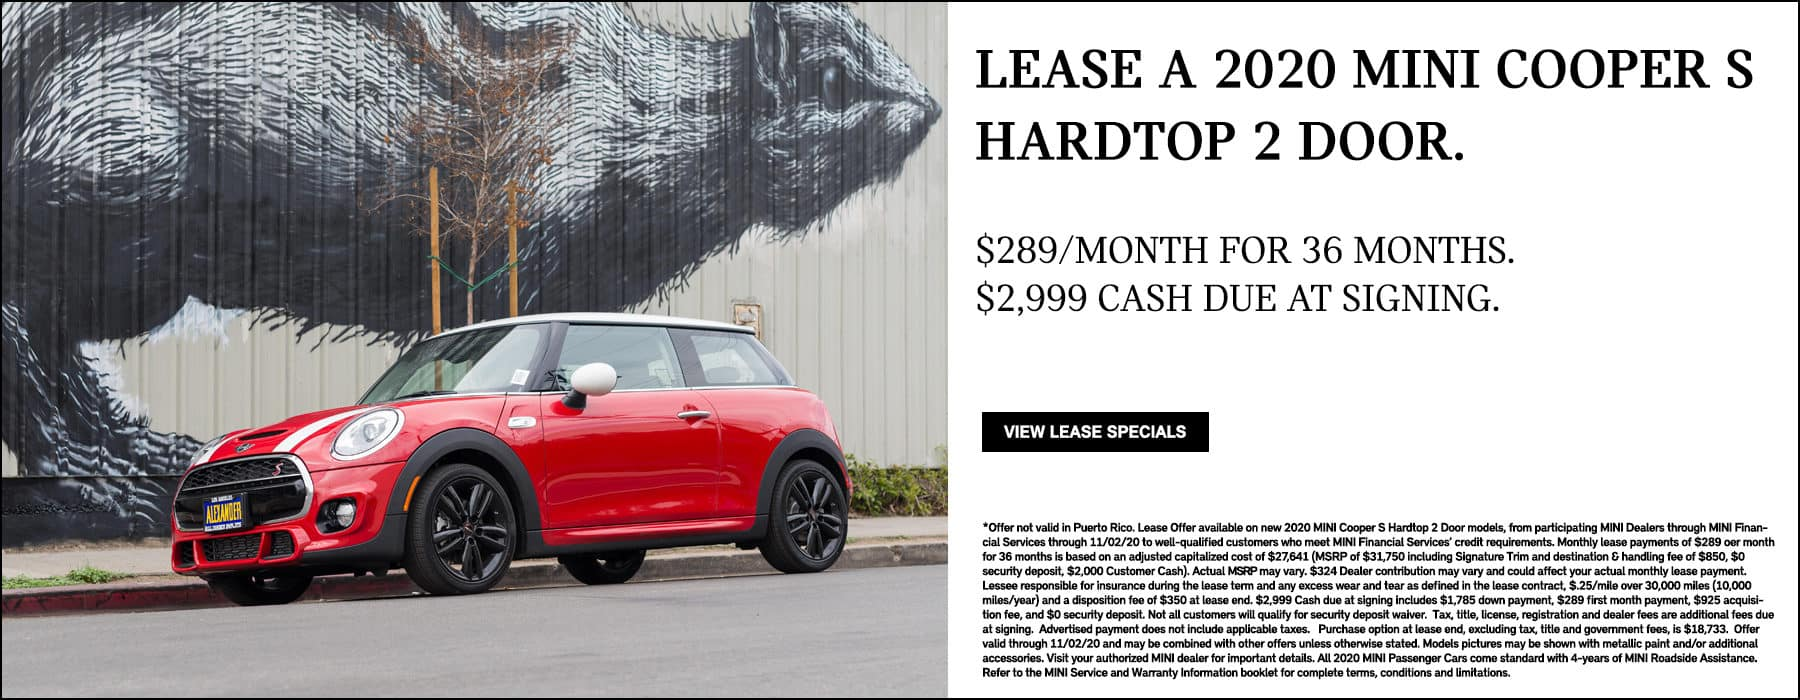 Lease a 2020 MINI Cooper S Hardtop 2 Door. $289/month for 36 months. $2,999 cash due at signing. View lease specials. See dealer for complete details.